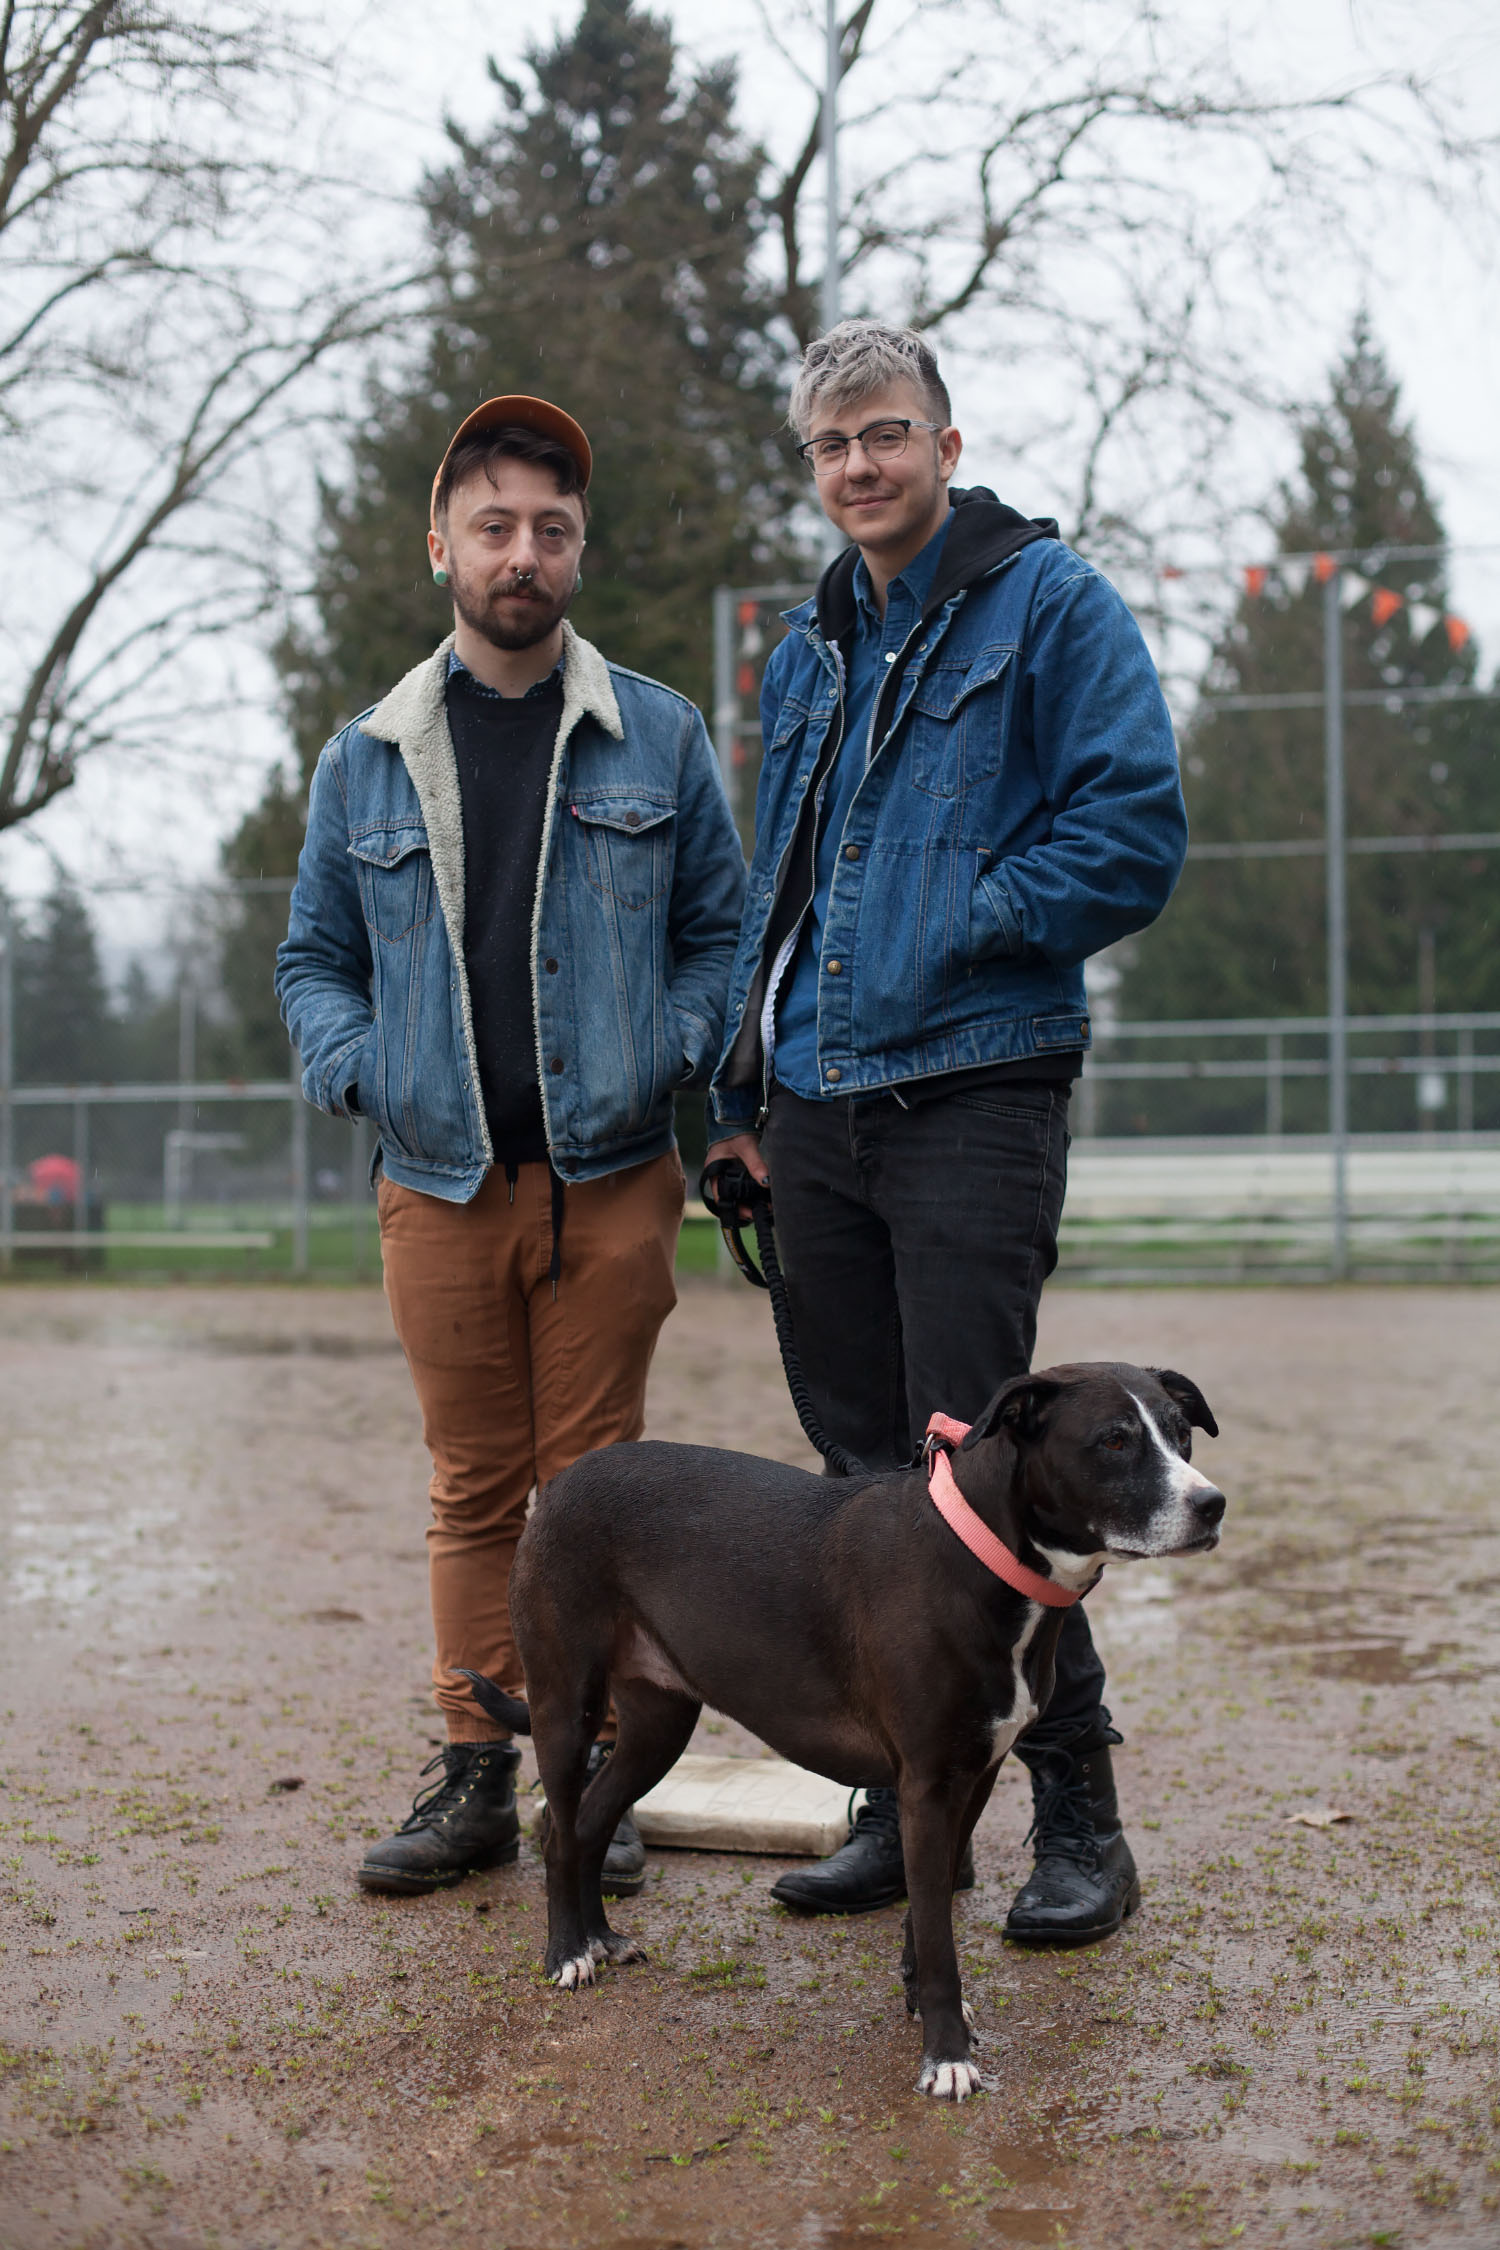 Max (left) and Jay (right), photo by Kevin Truong